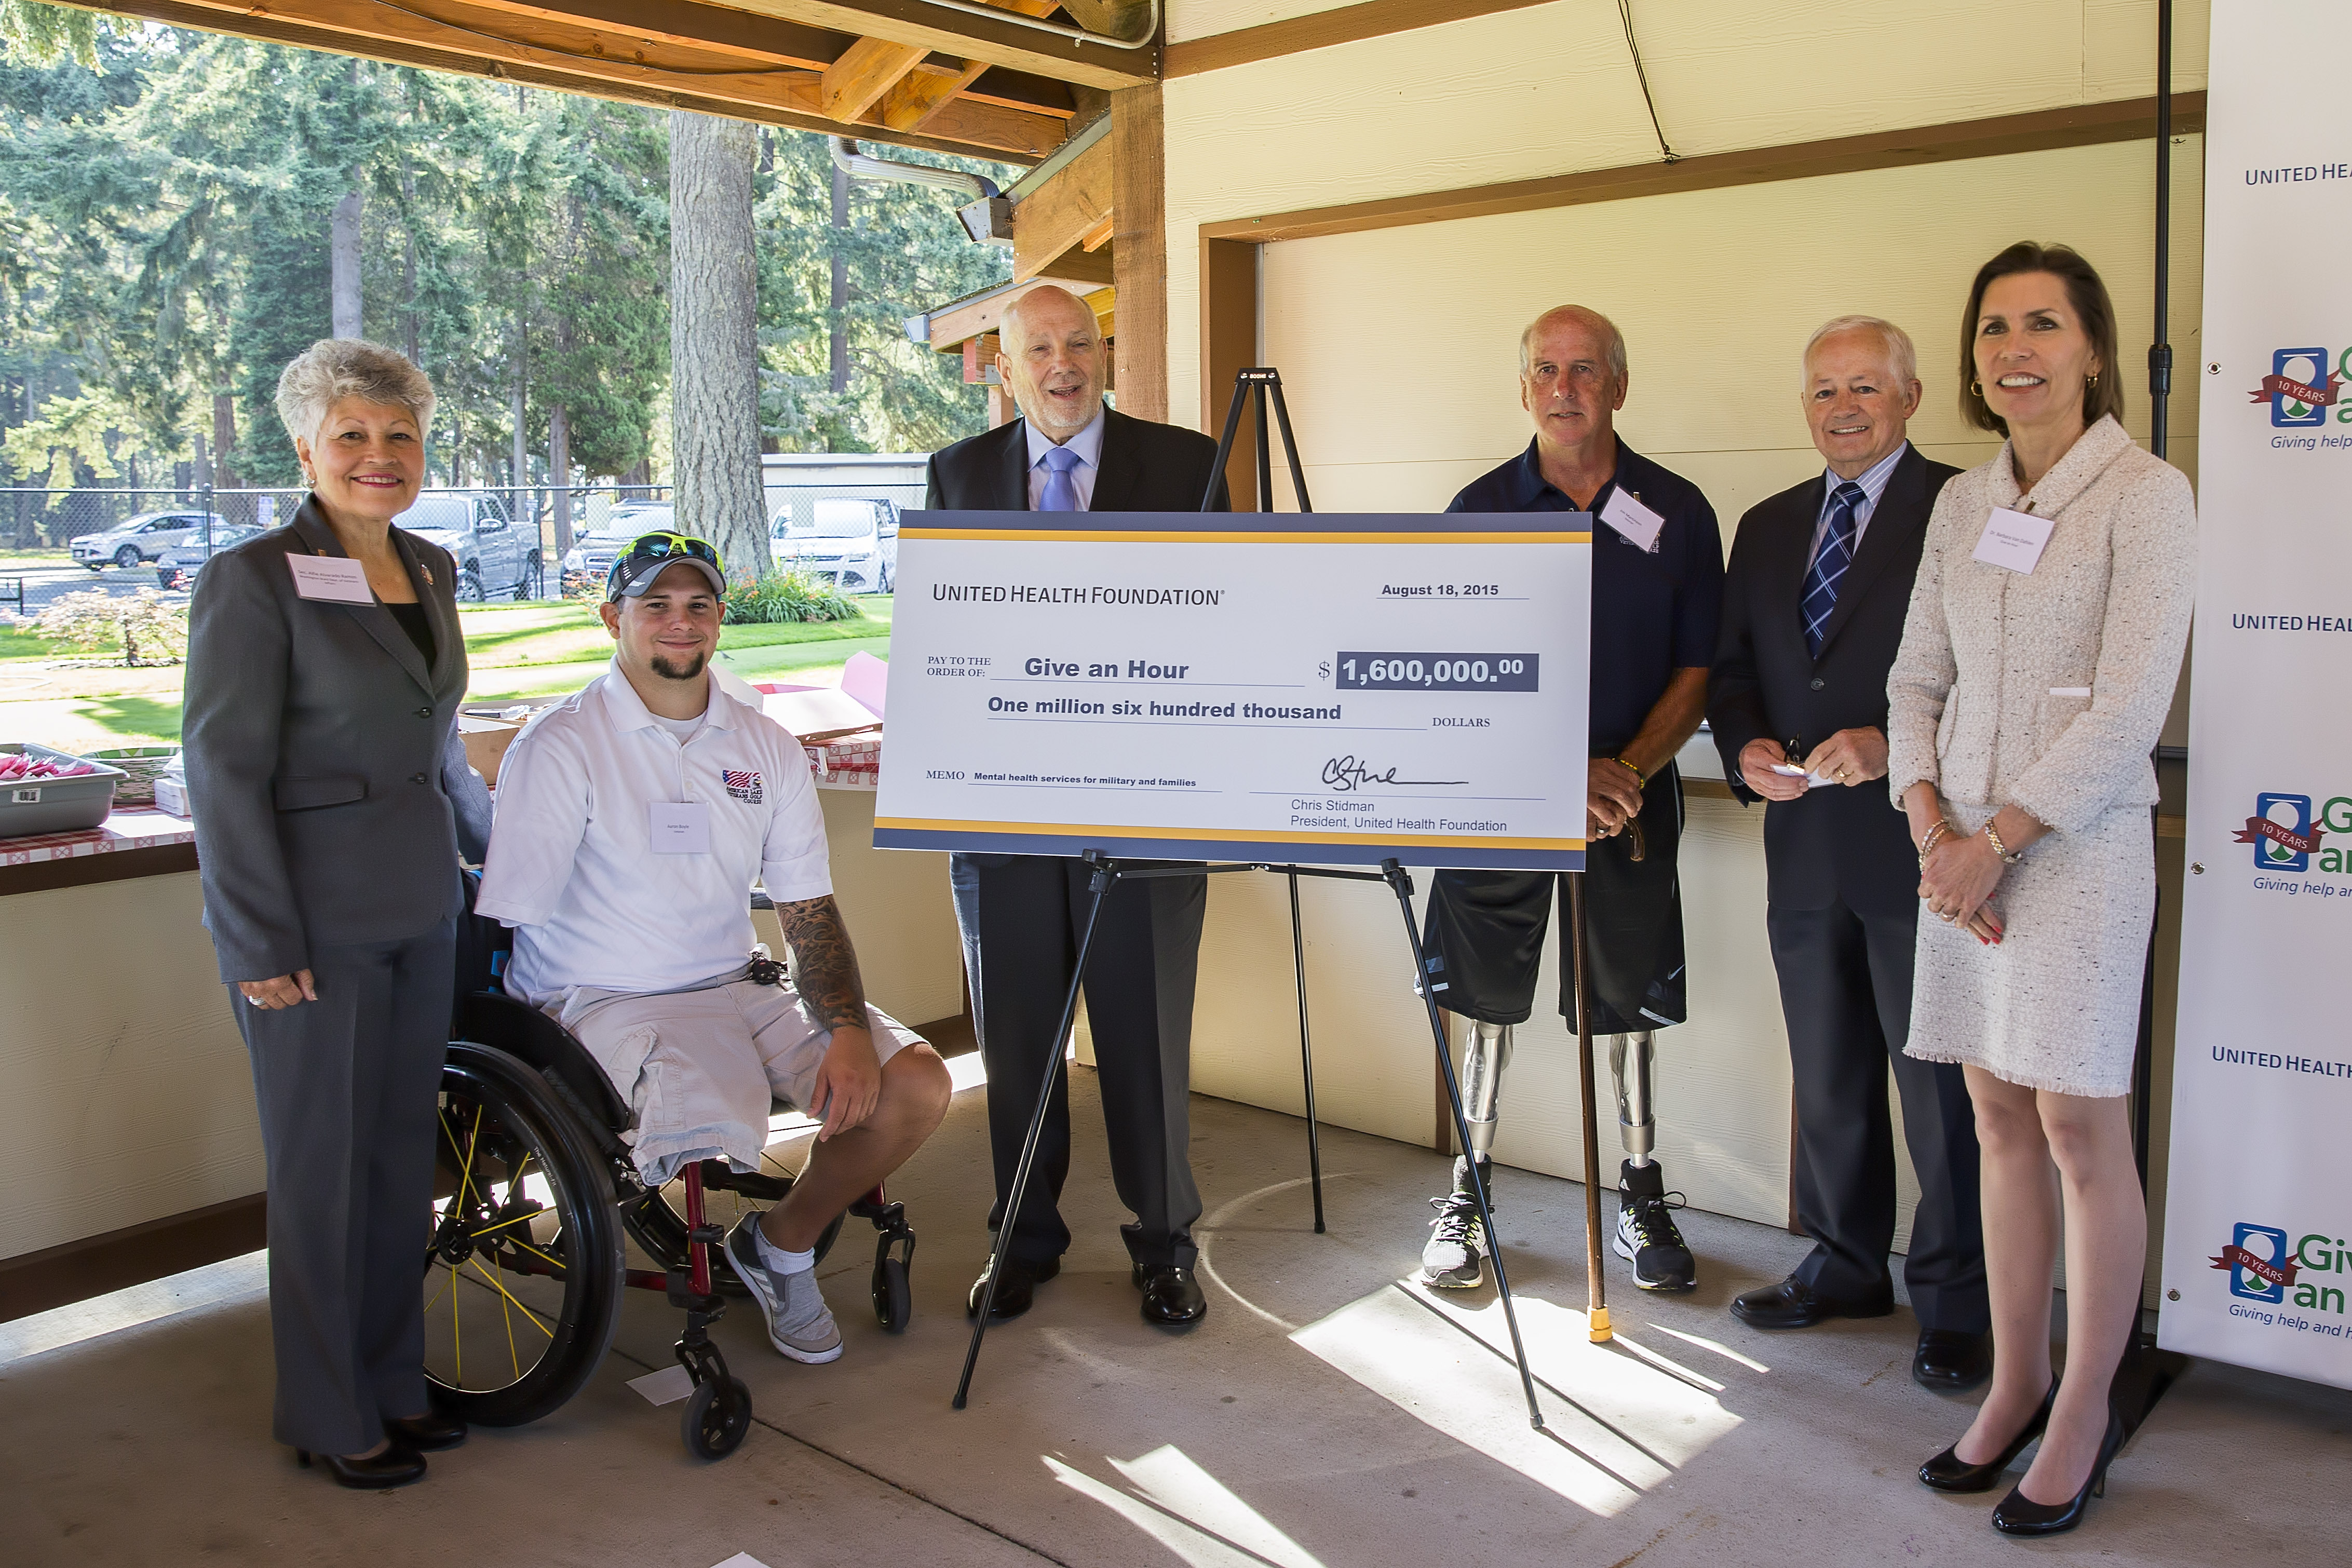 Give An Hour Receives 1 6 Million From United Health Foundation To